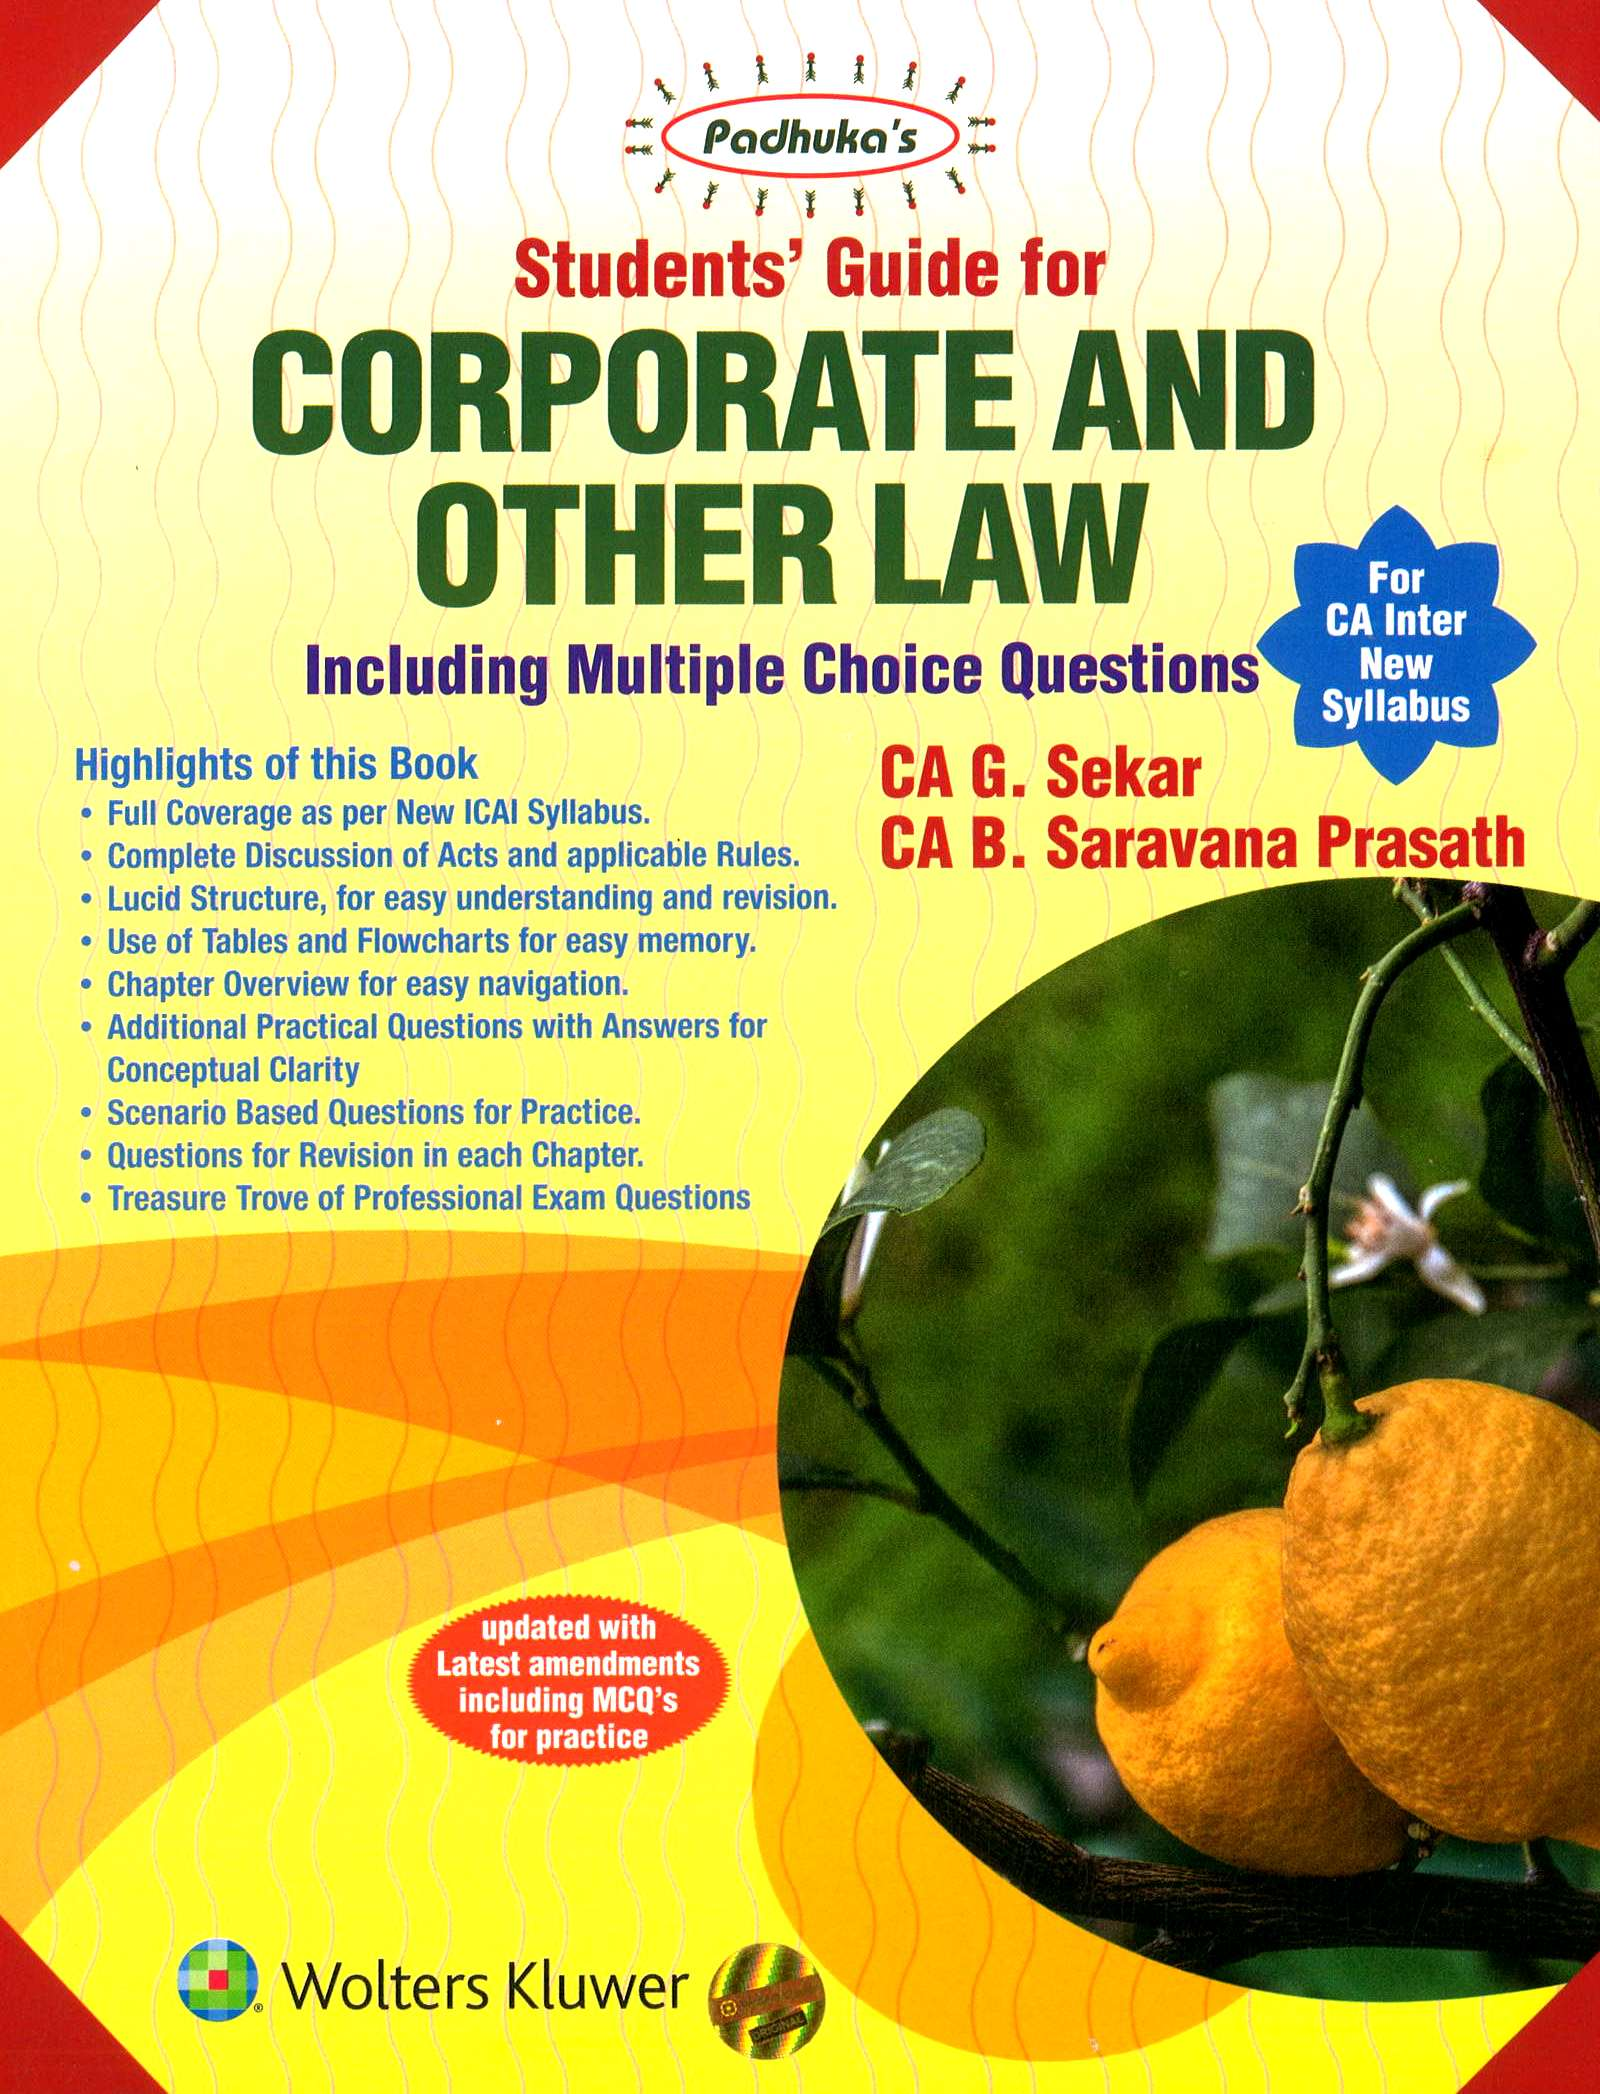 CCH Padhuka Students Guide for Corporate and Other Law CA Inter (New Syllabus) By G Sekar , B Saravana Prasath Applicable for May 2020 Exam